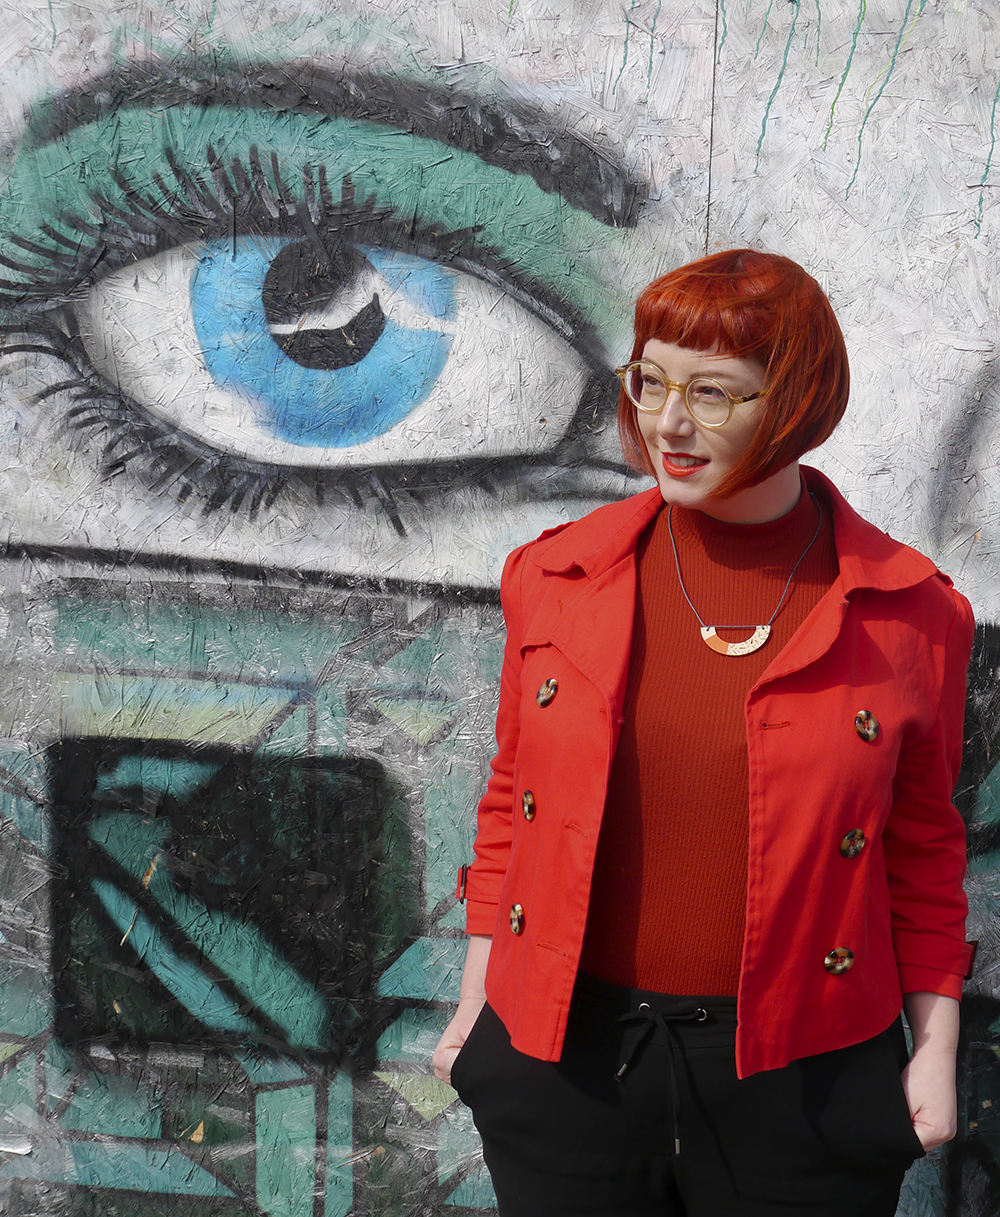 Colourful street style from Scottish blogger Helen from Wardrobe Conversations against a colourful graffiti wall with eye design painted in Dundee